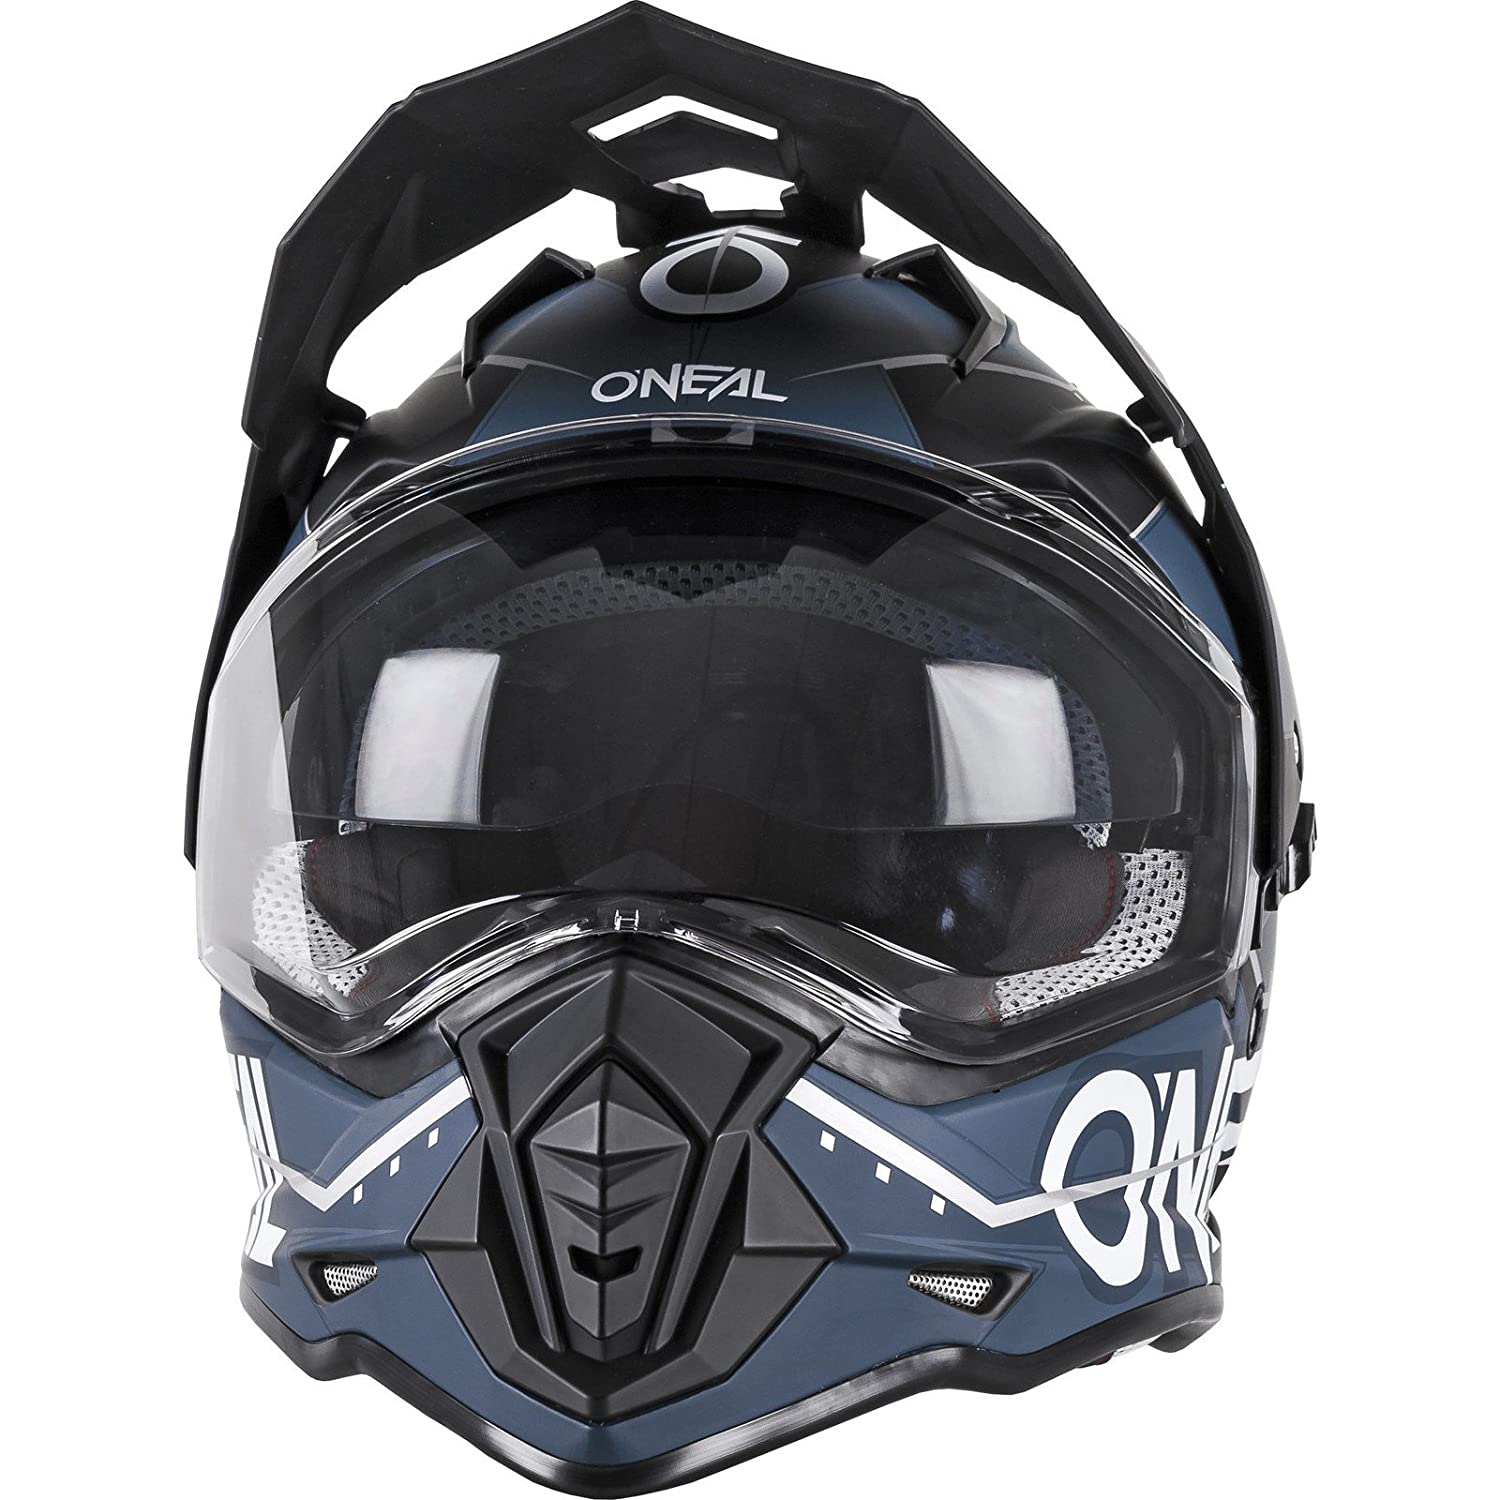 Amazon.com: ONeal Sierra II Mens Full-Face Slingshot Helmet (Black, Small): Automotive